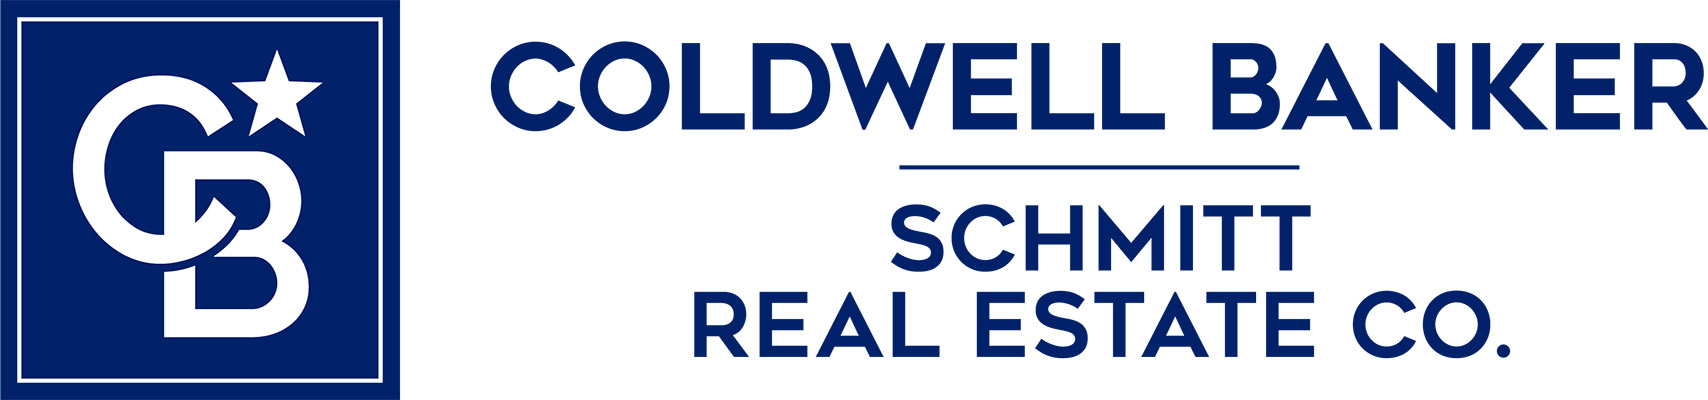 Florida Keys Home Team - Coldwell Banker Schmitt